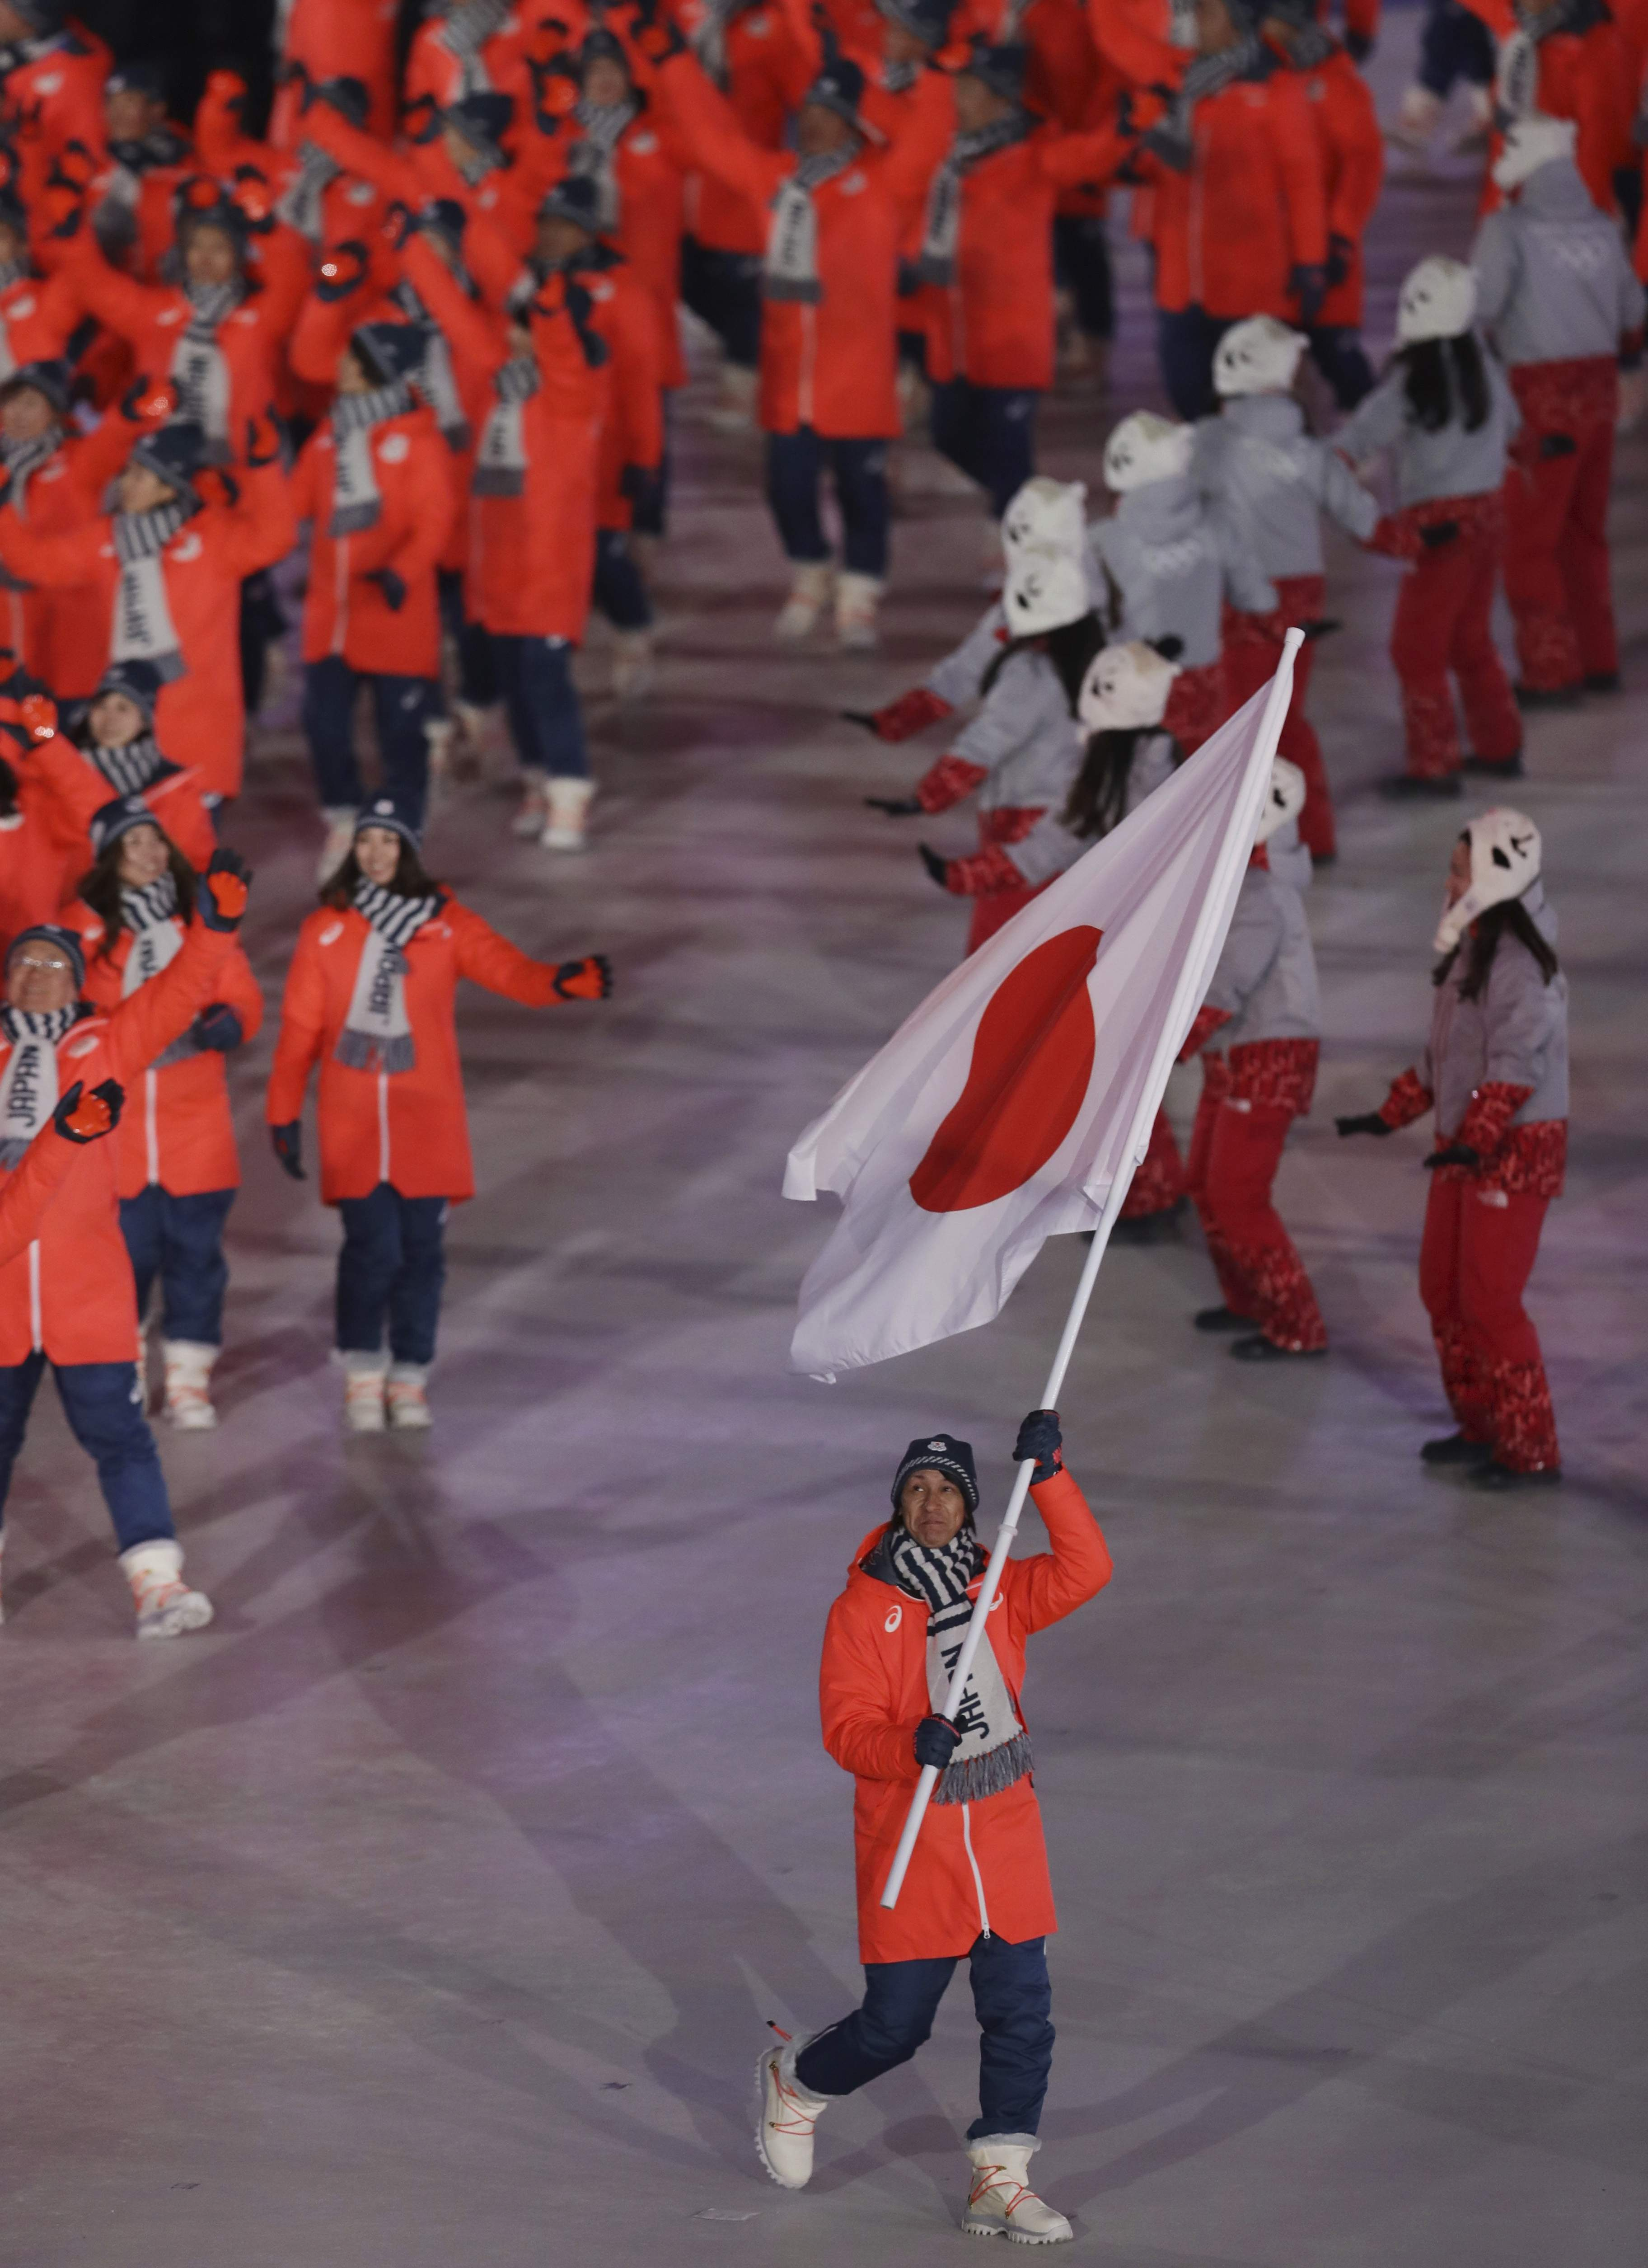 Noriaki Kasai carries the flag of Japan during the opening ceremony of the 2018 Winter Olympics in Pyeongchang, South Korea, Friday, Feb. 9, 2018. (AP Photo/Michael Sohn)